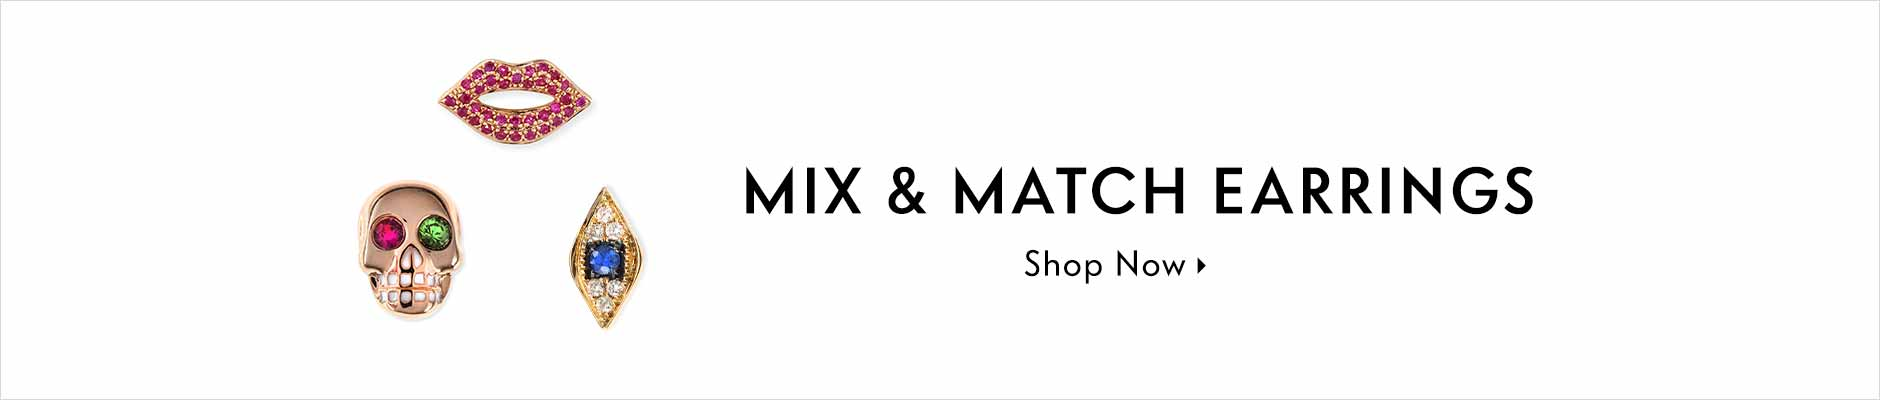 Mix And Match Earrings